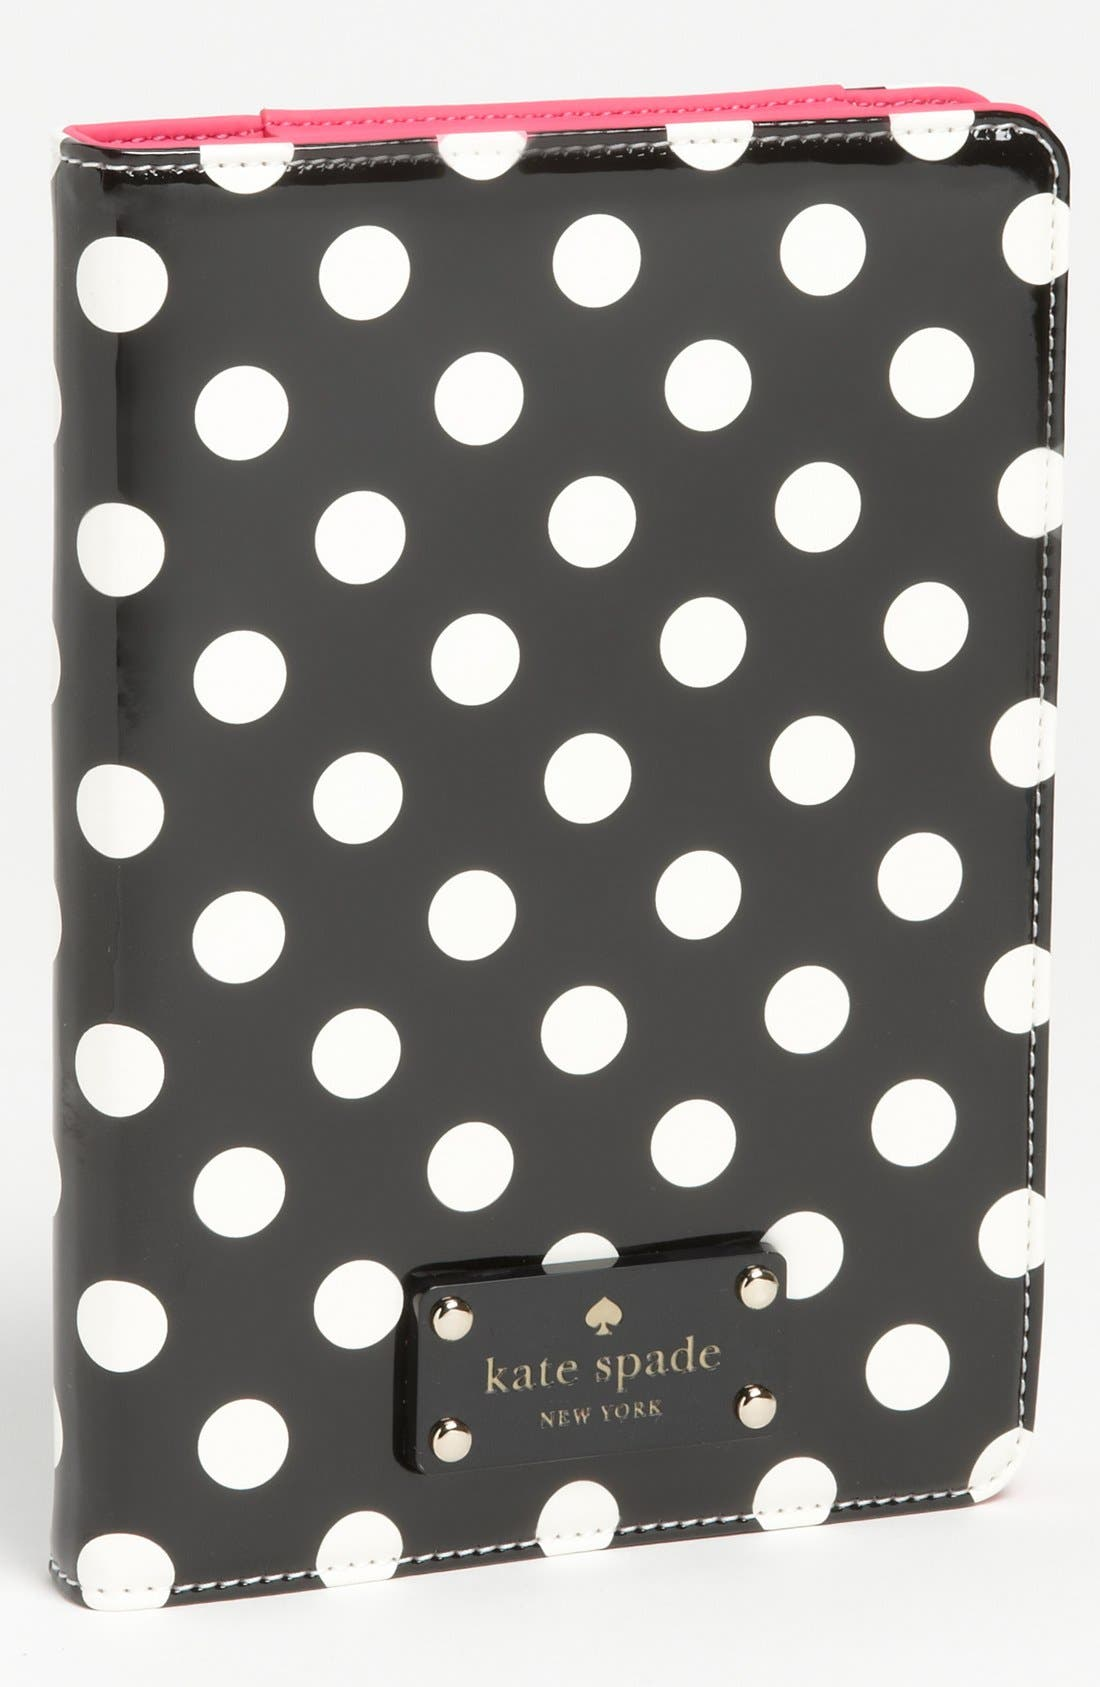 Alternate Image 1 Selected - kate spade new york 'le pavillion' iPad mini folio